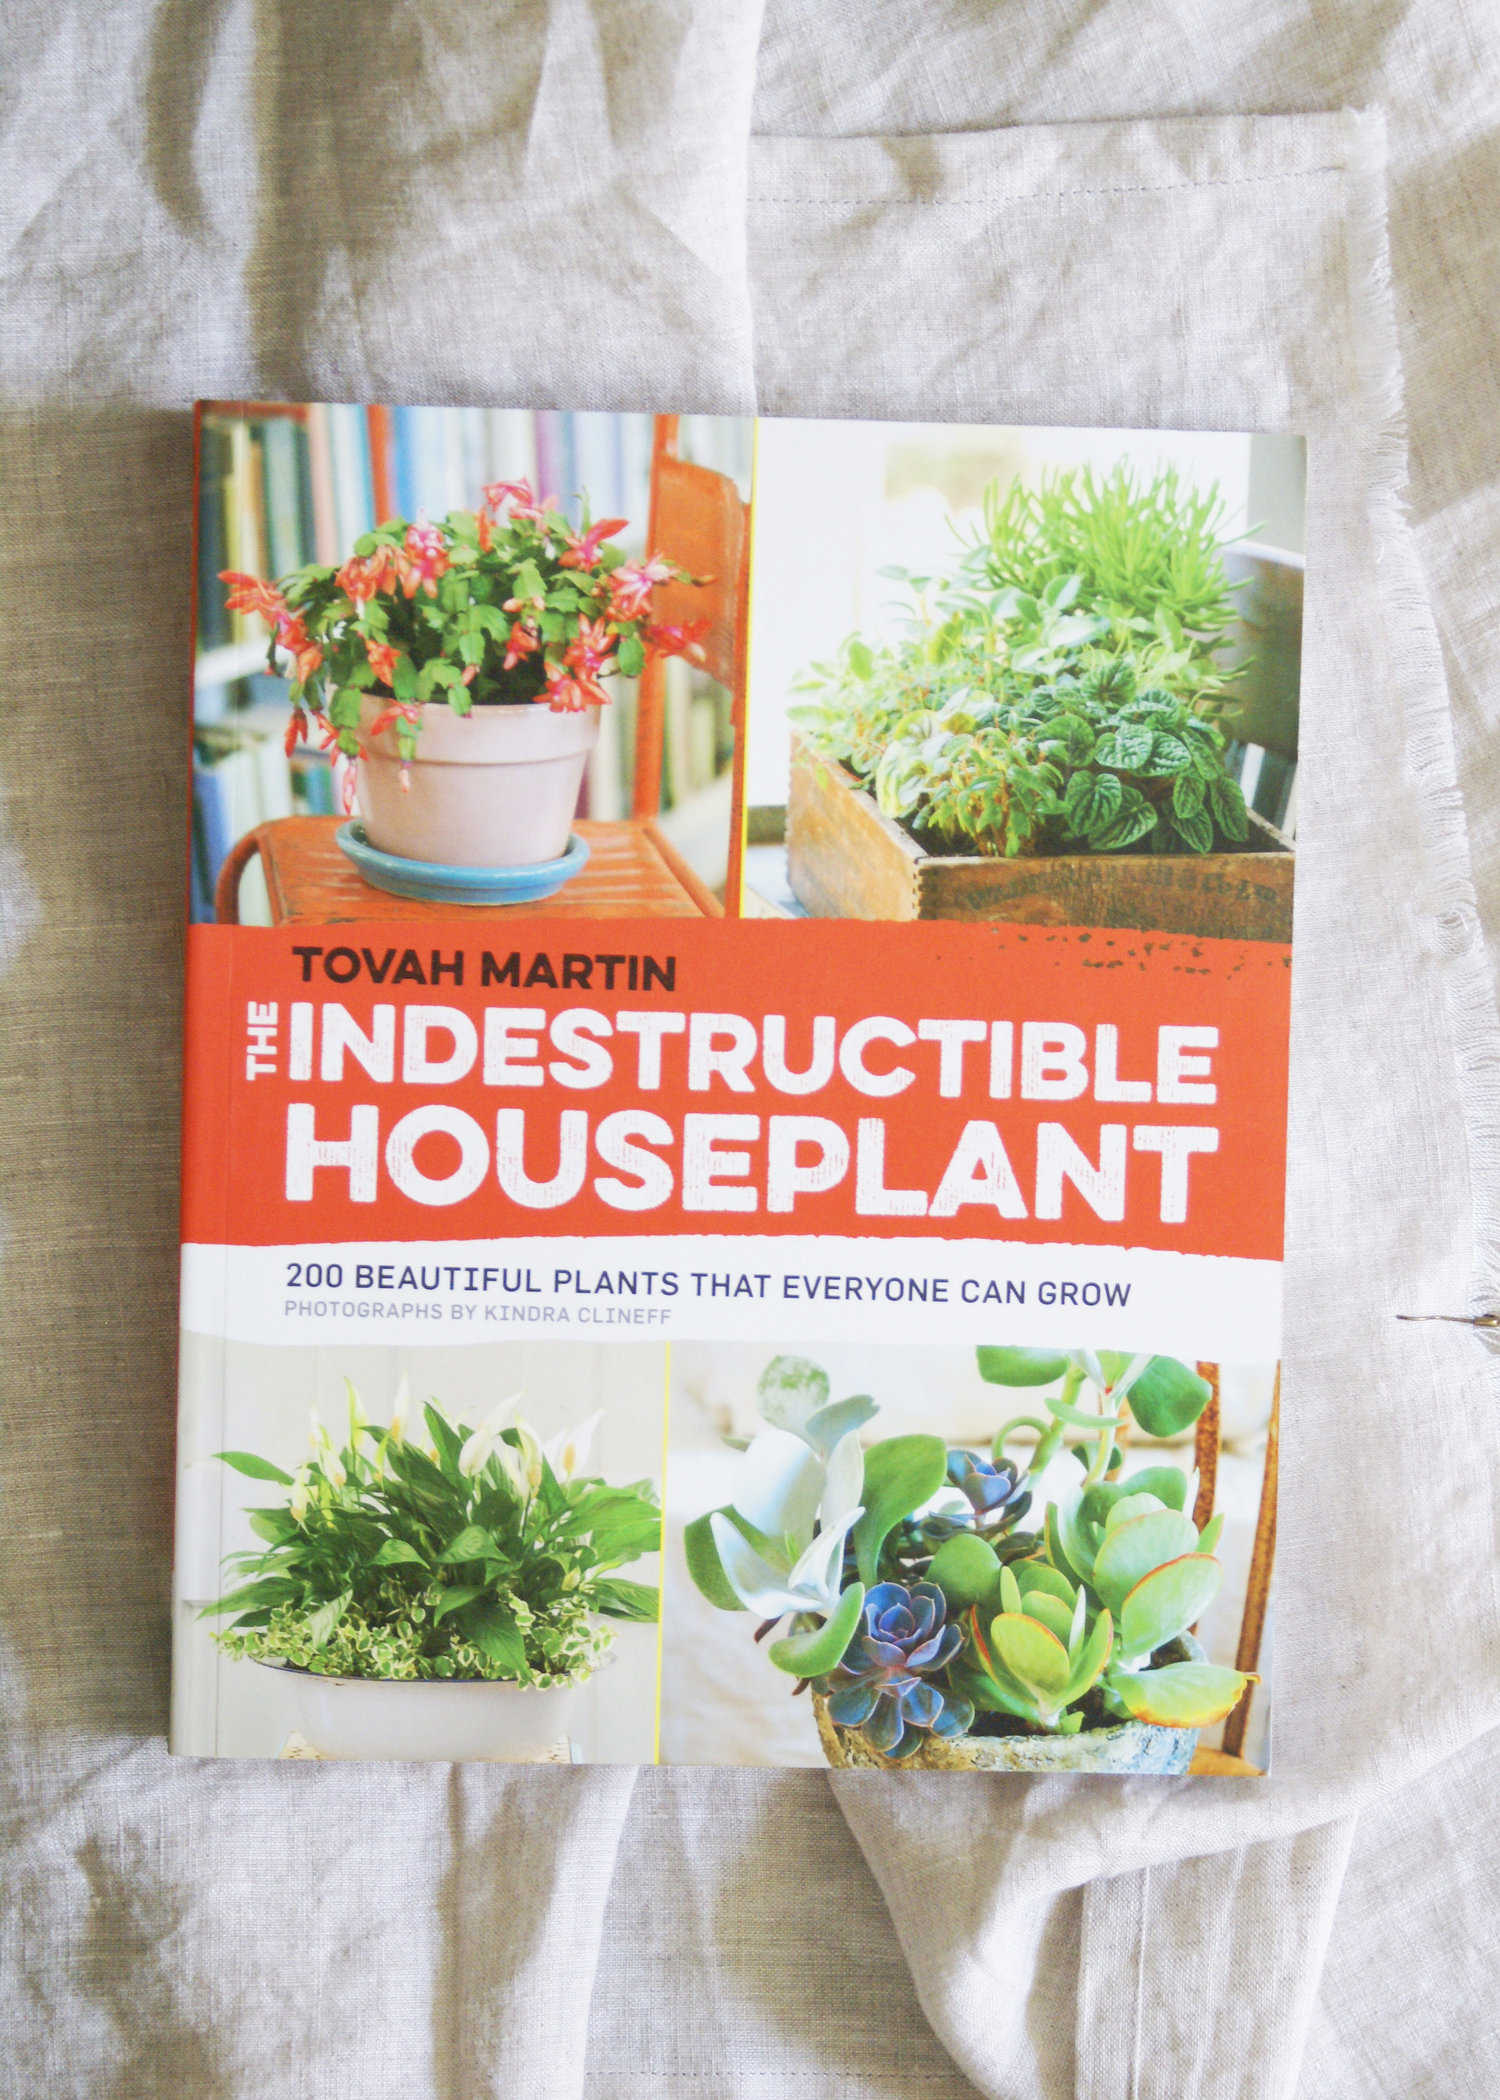 Book The Indestructible Houseplant 200 Beautiful Plants That